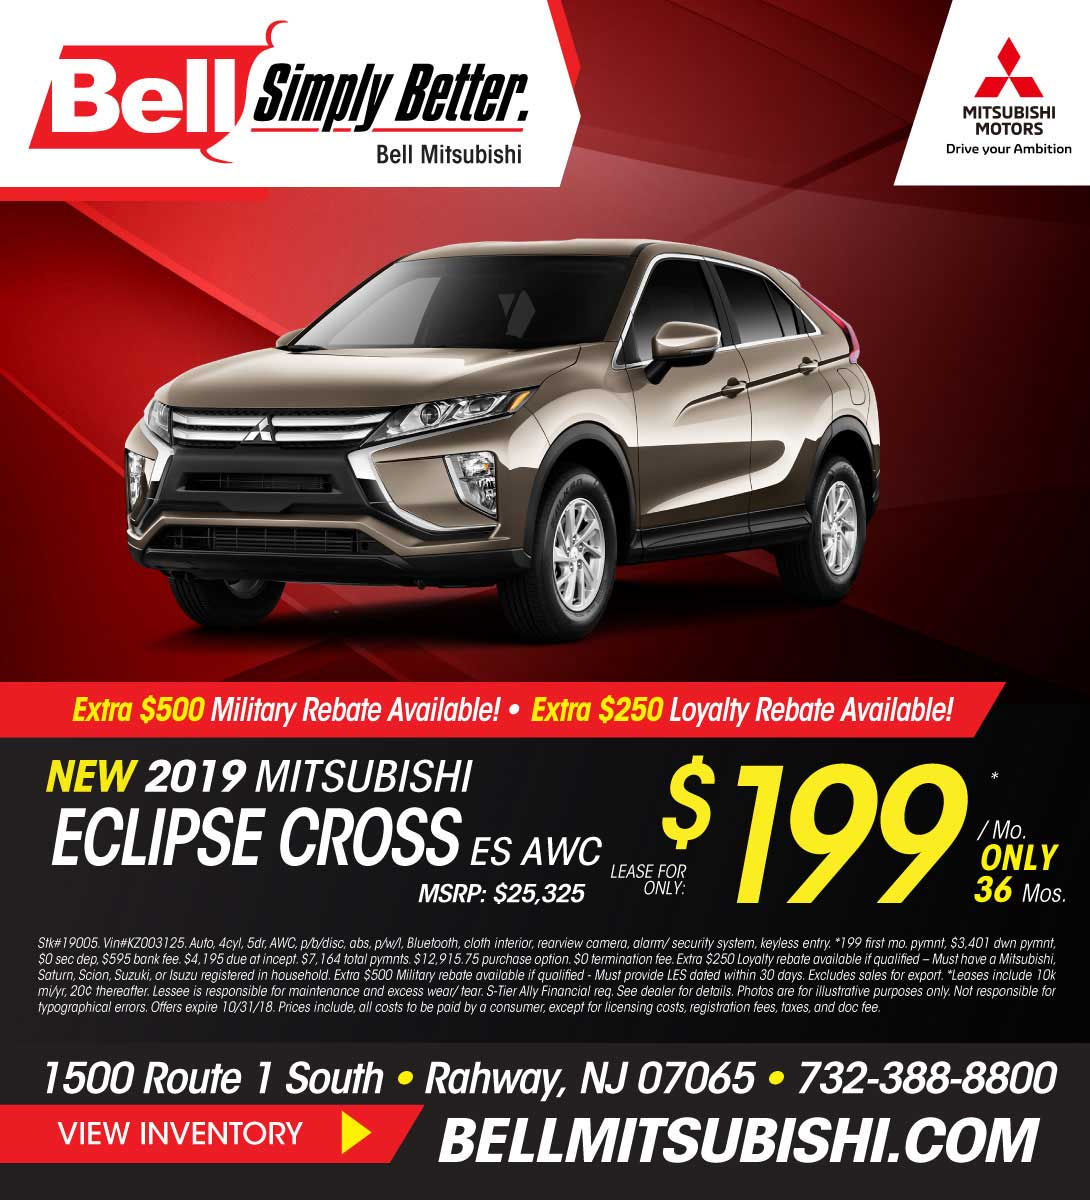 BLM-507-Landing-Pages_2018-eclipse-cross-es_Lease-199.jpg